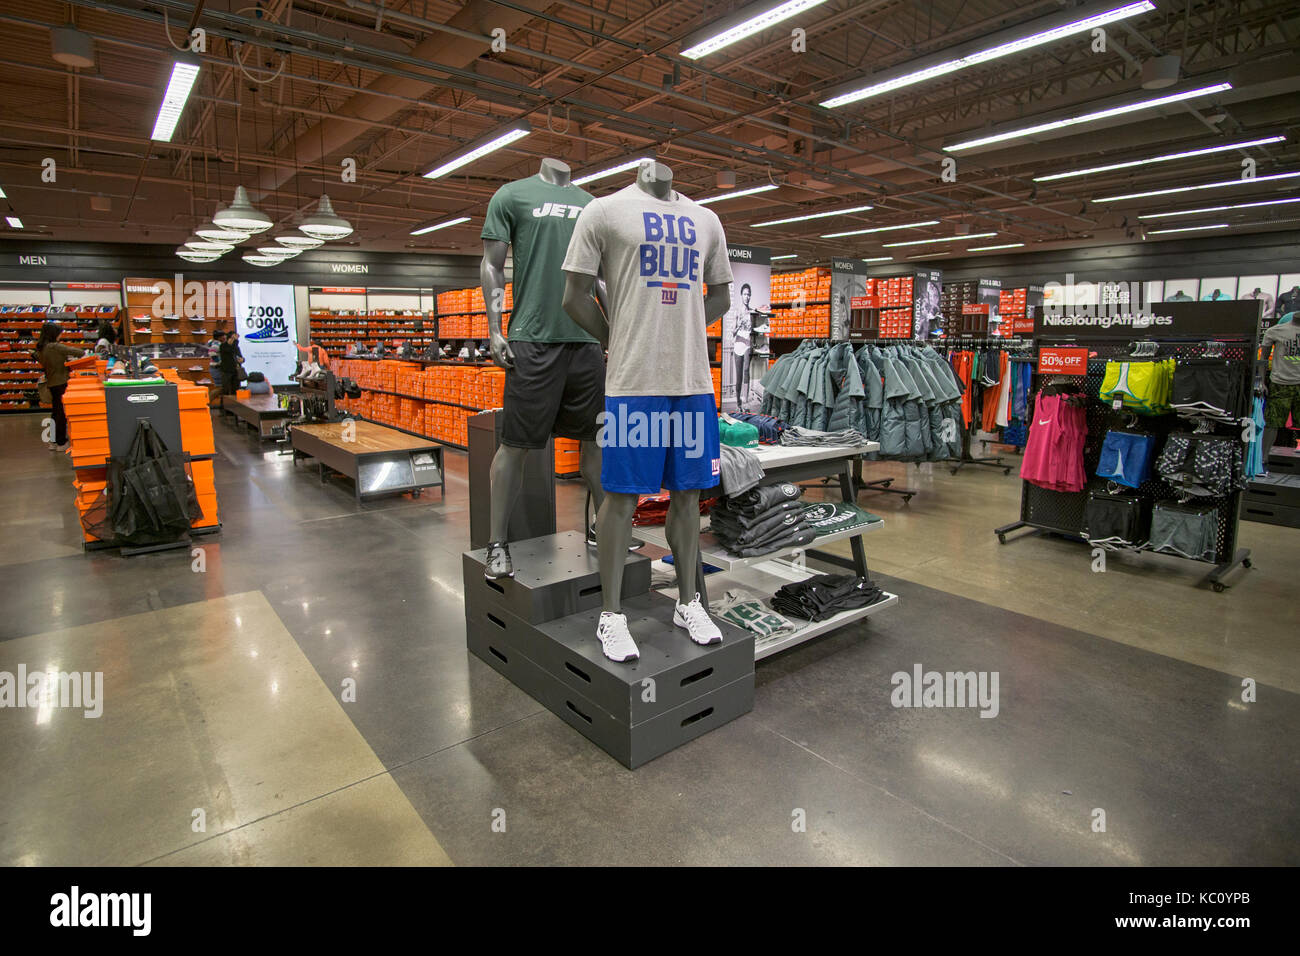 Factory outlet mall stock photos factory outlet mall stock images alamy for Interior alternatives manufacturers outlet mall